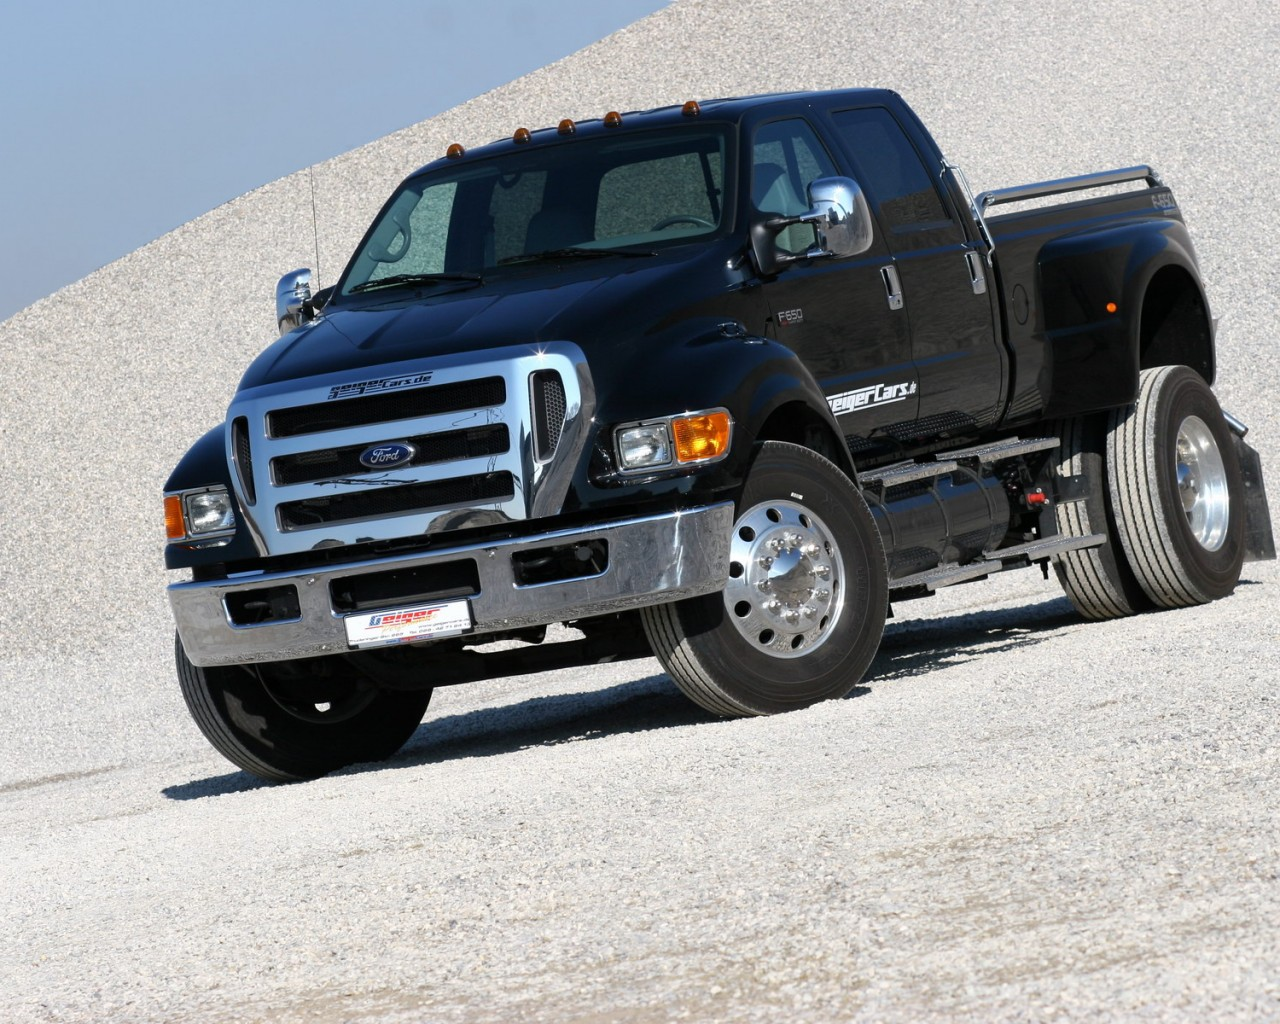 Ford f-620 photo - 4